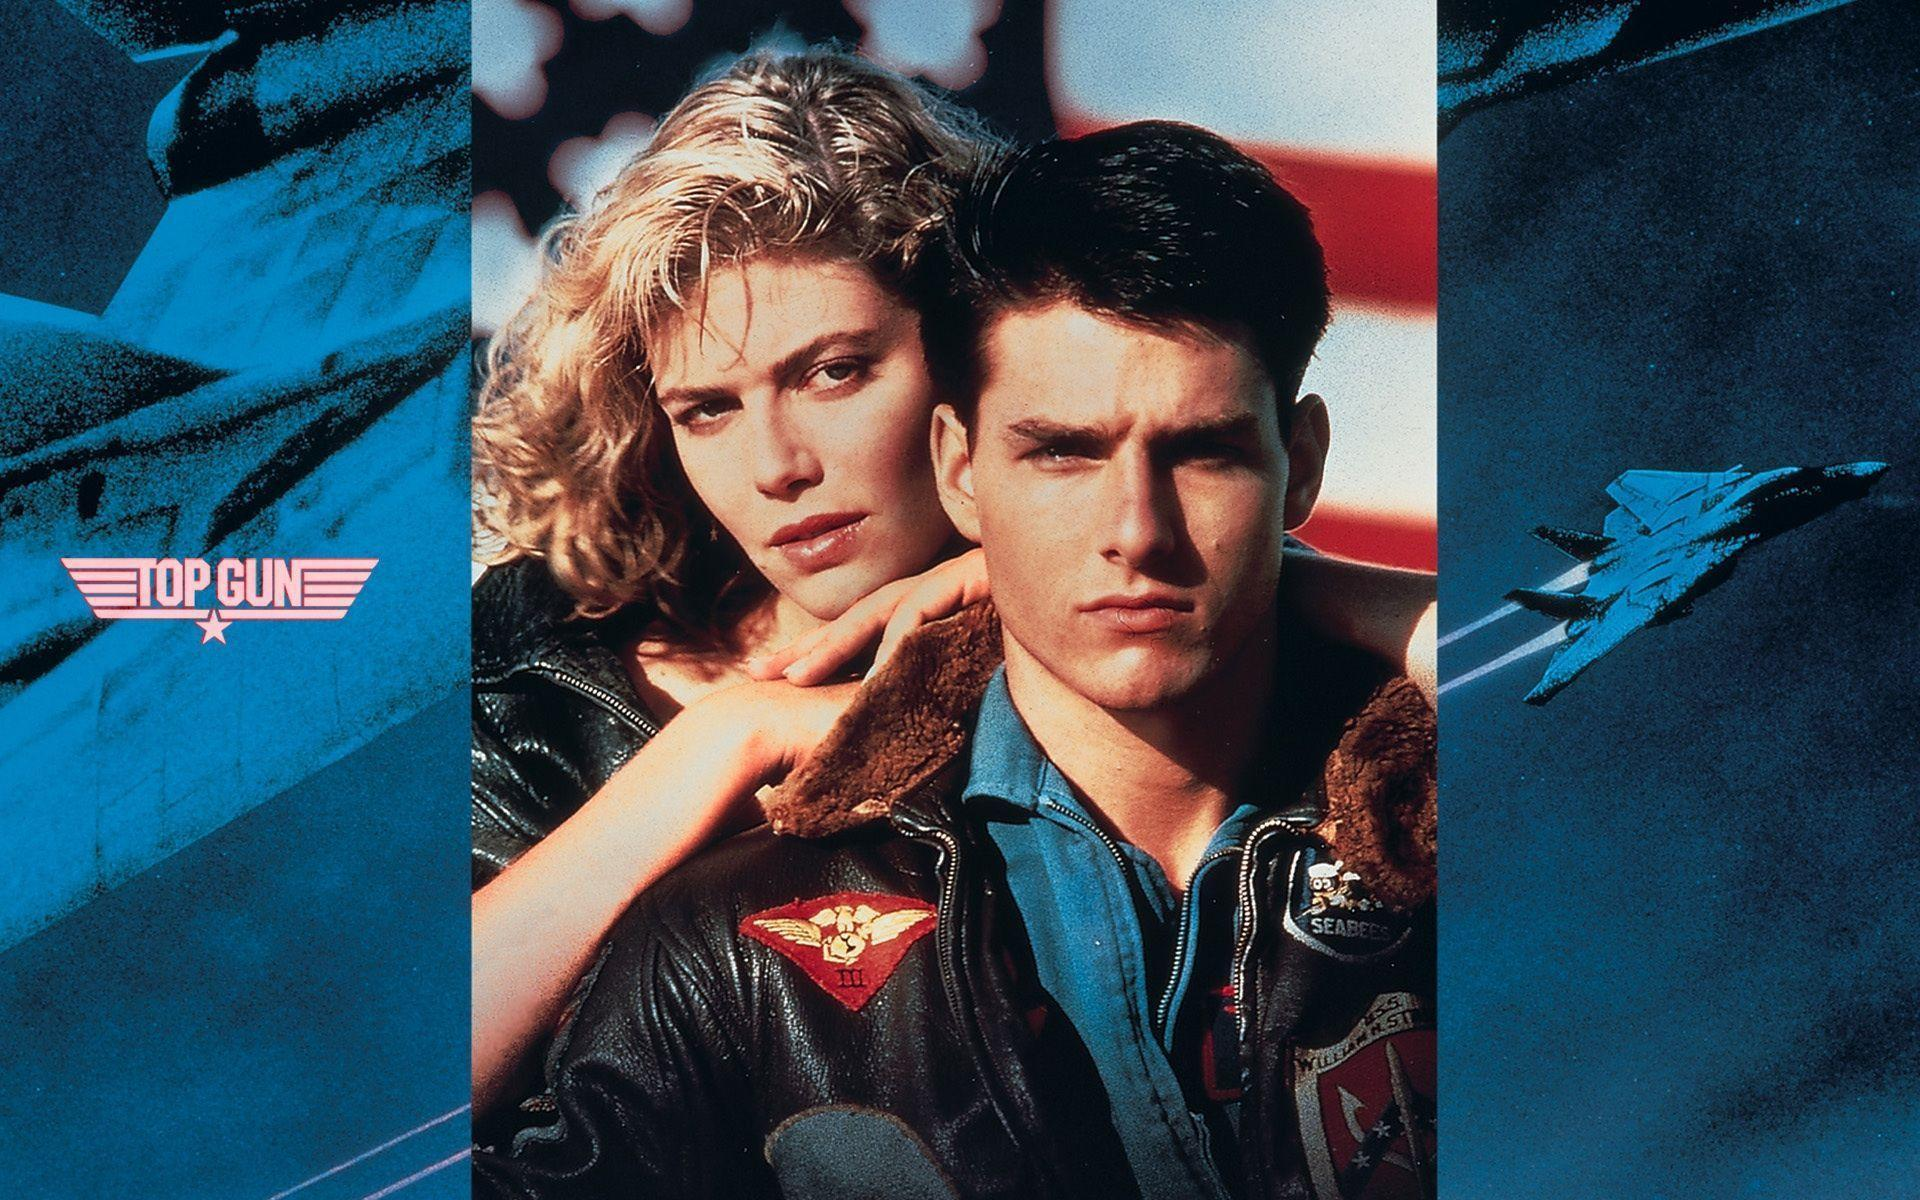 Top Gun Maverick Wallpaper High Quality Is Cool Wallpapers